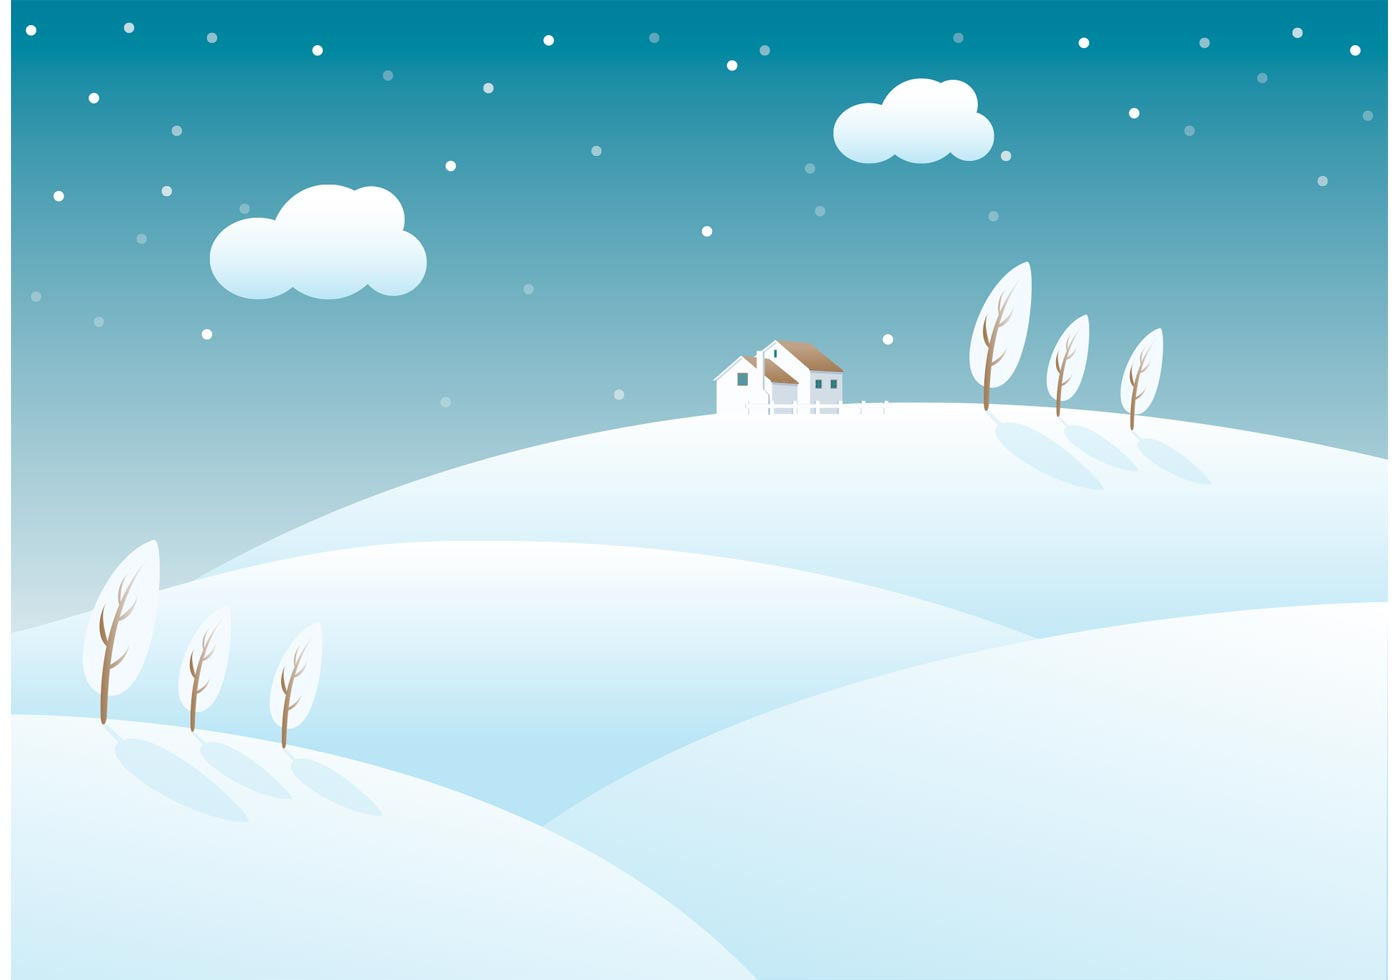 Snow banks clipart 20 free Cliparts | Download images on ...